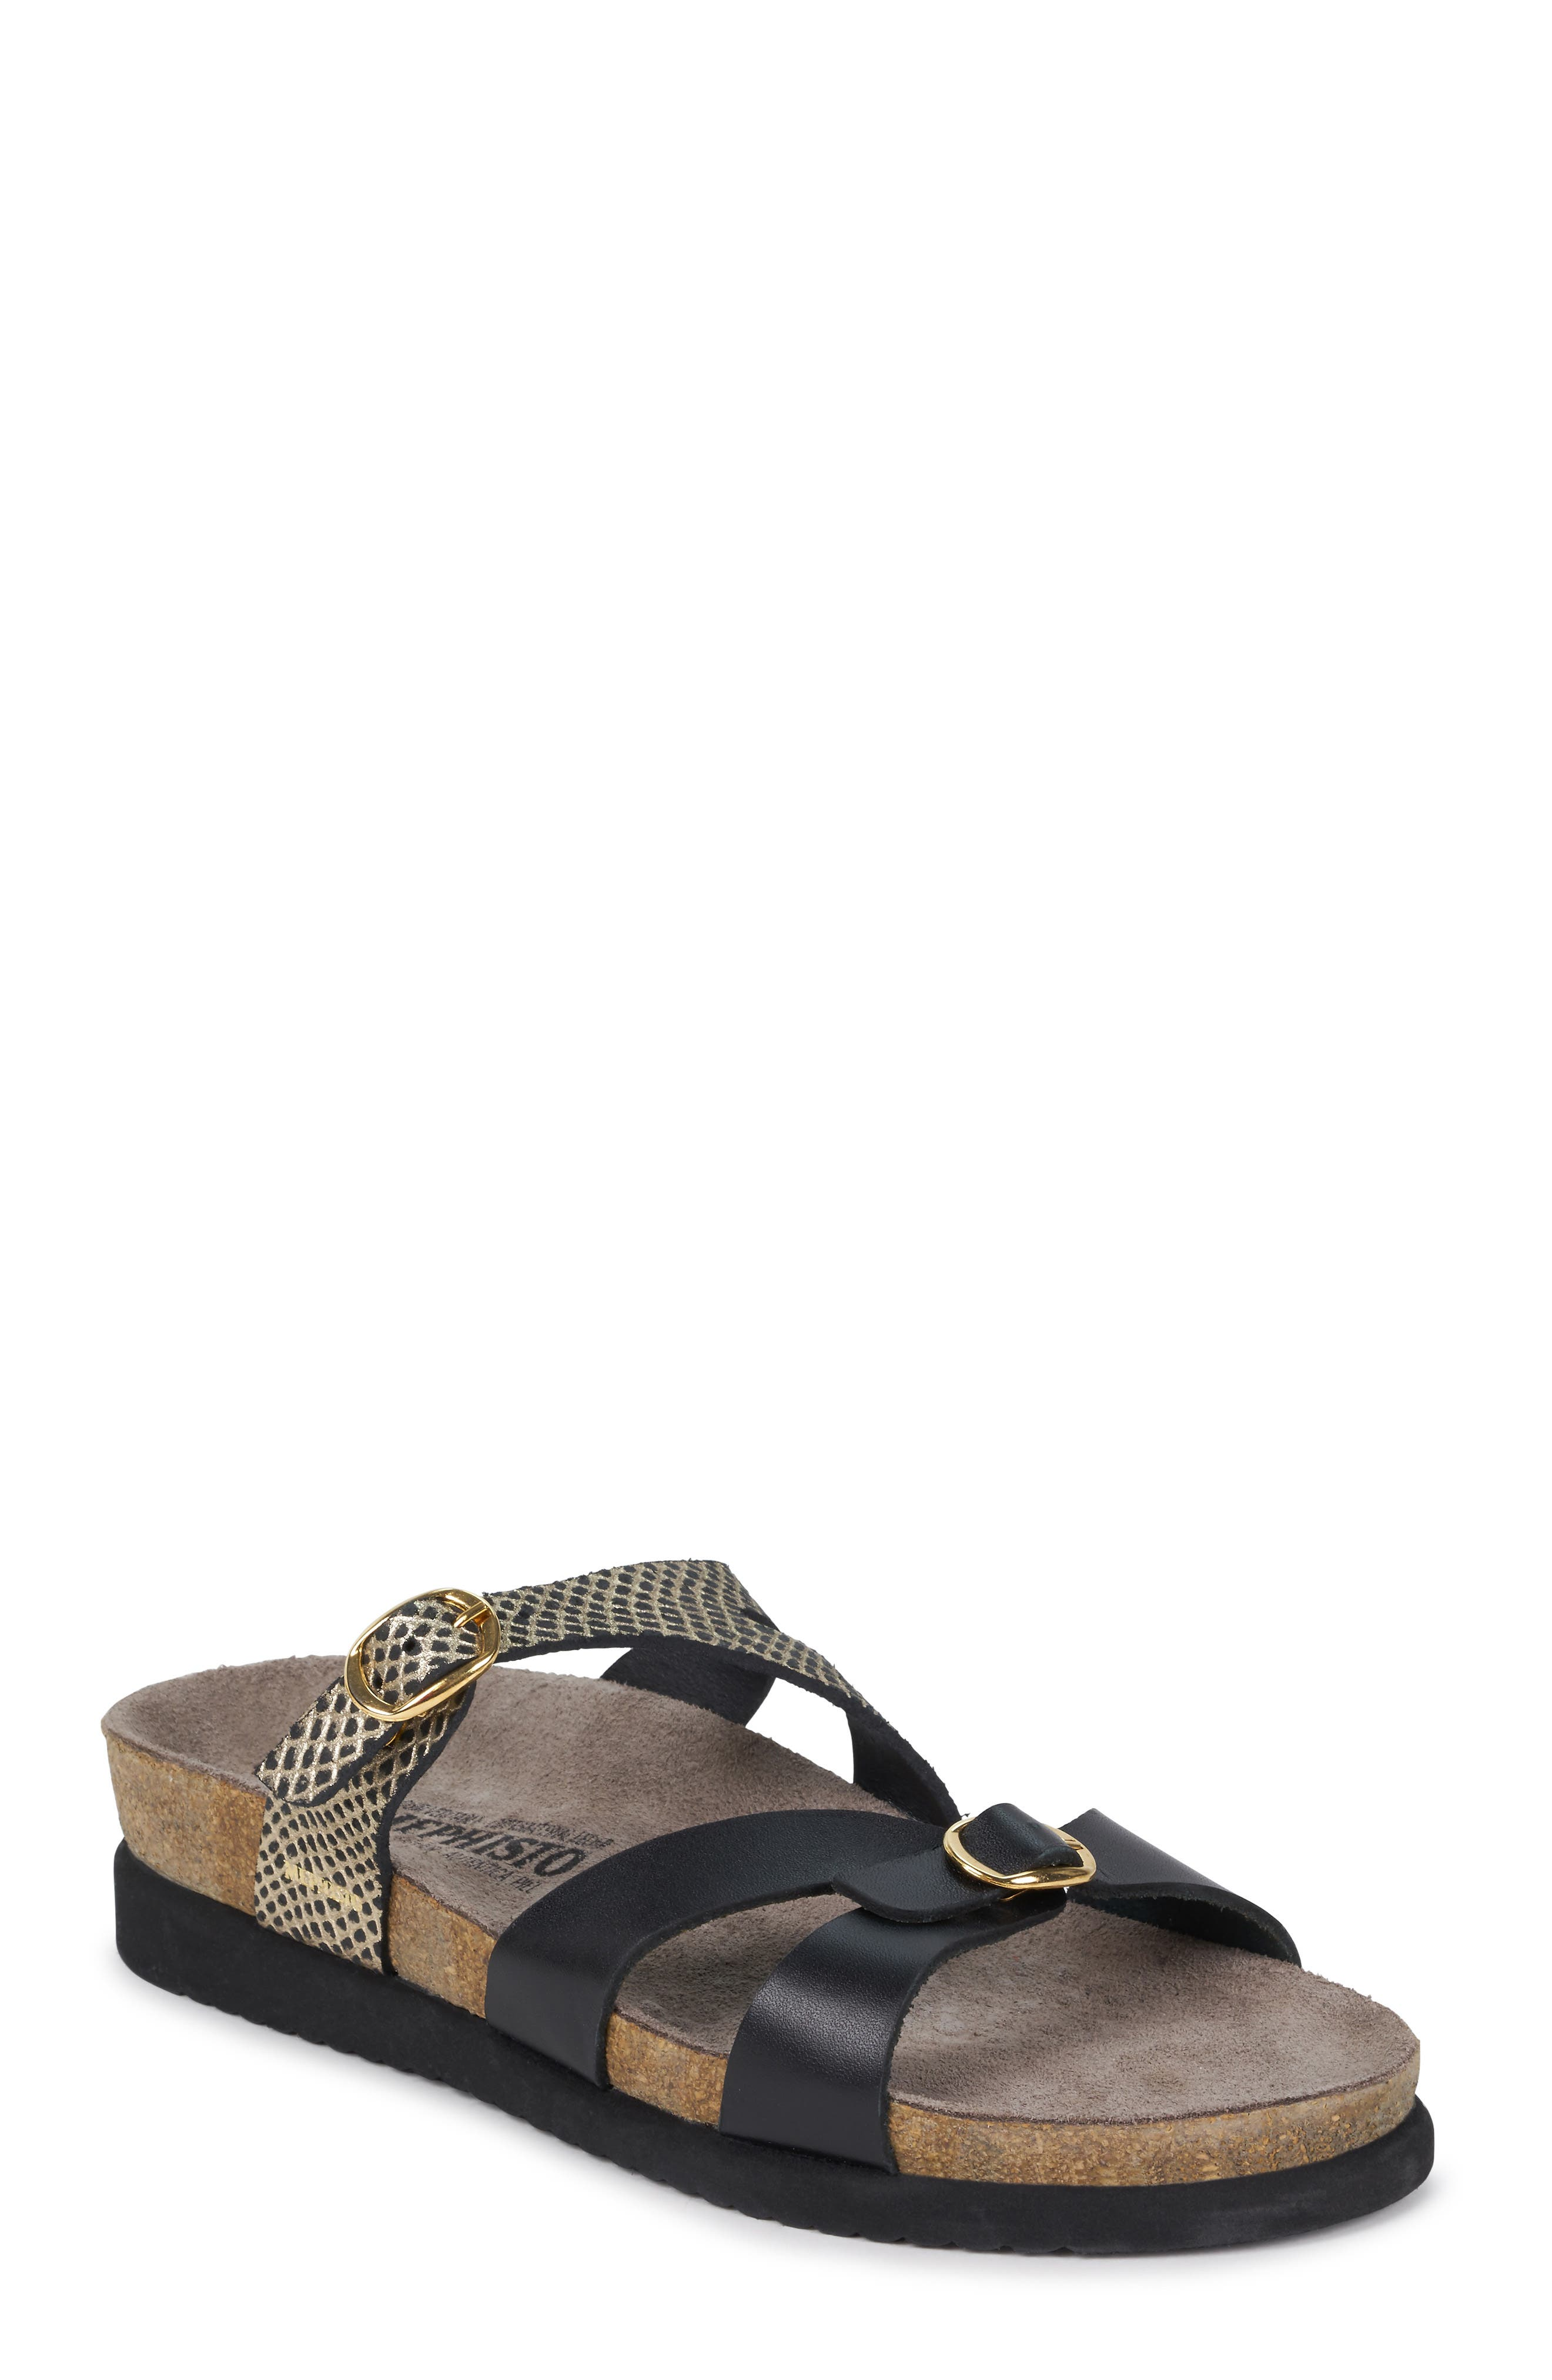 MEPHISTO, 'Hannel' Sandal, Main thumbnail 1, color, BLACK CUBA WAXY LEATHER